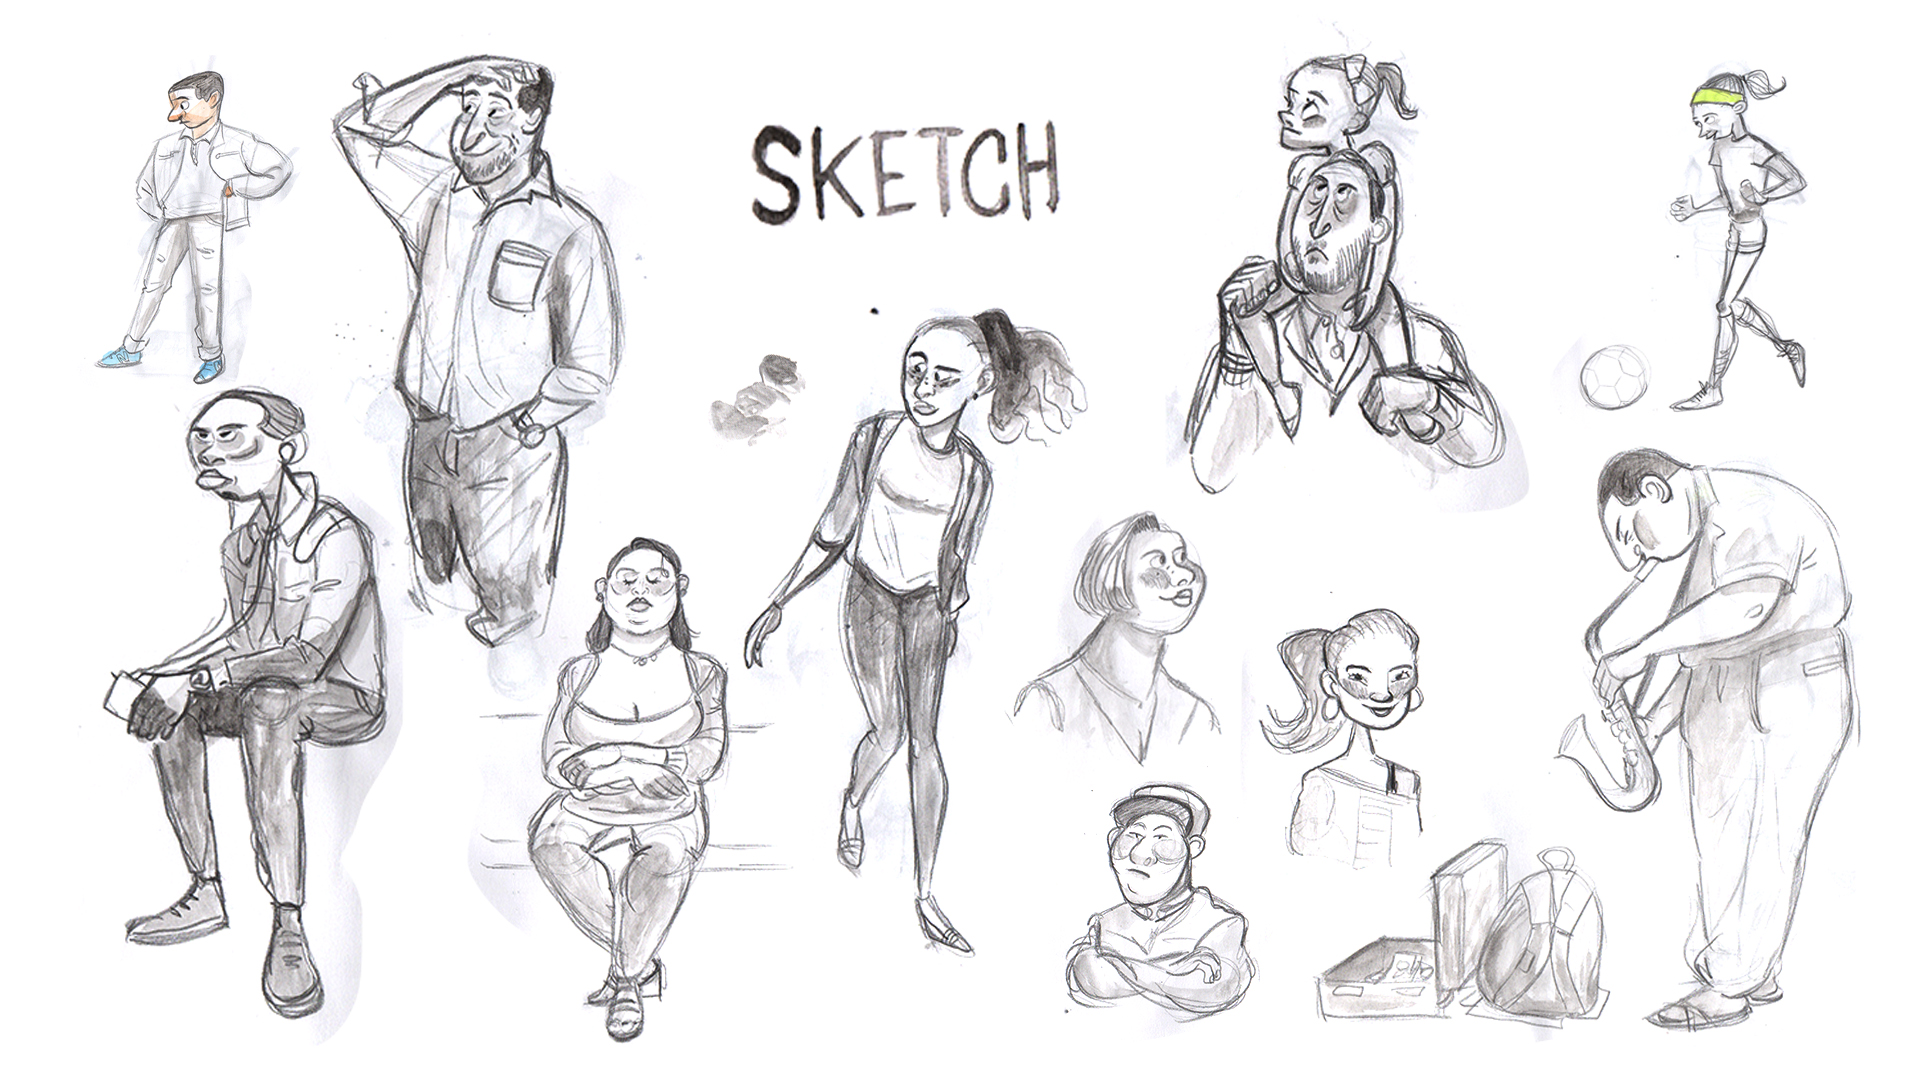 Sketch_page